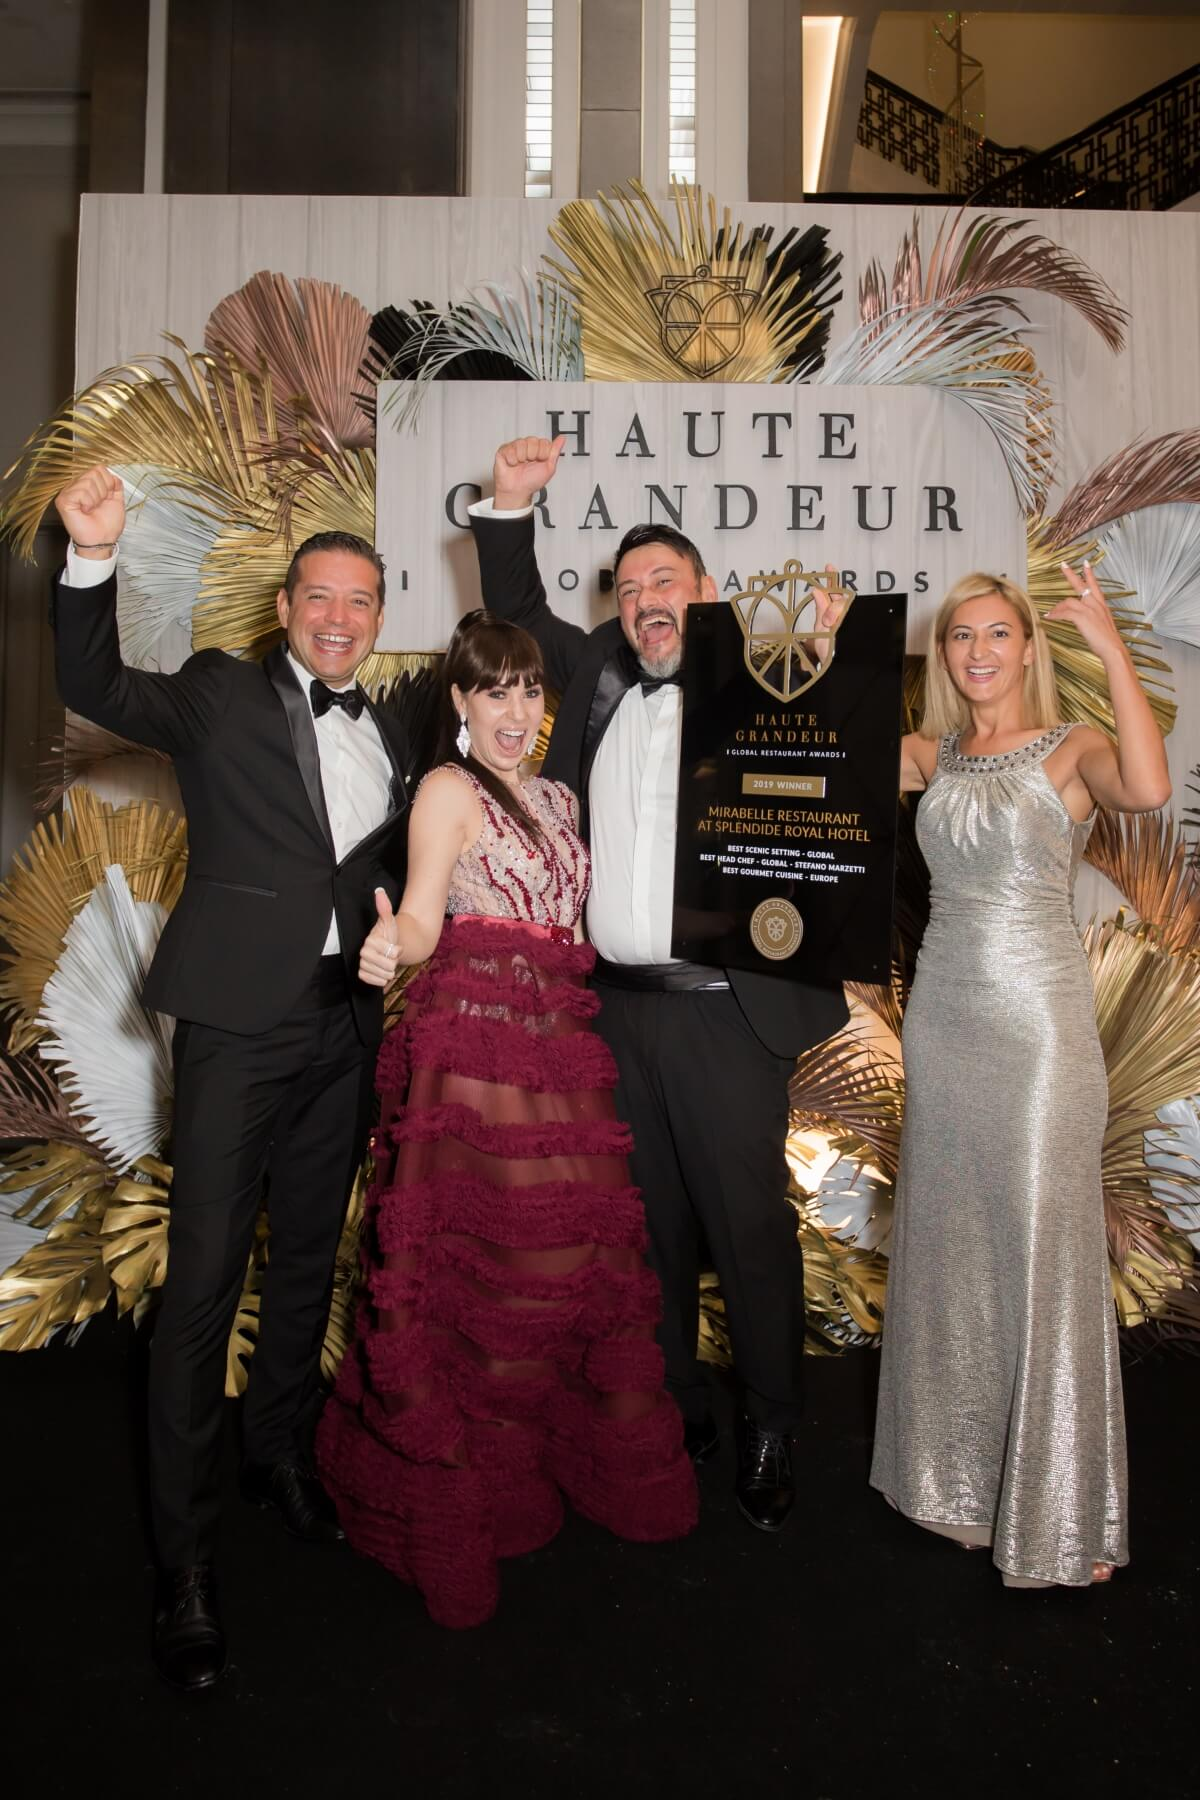 Haute Grandeur Global Awards